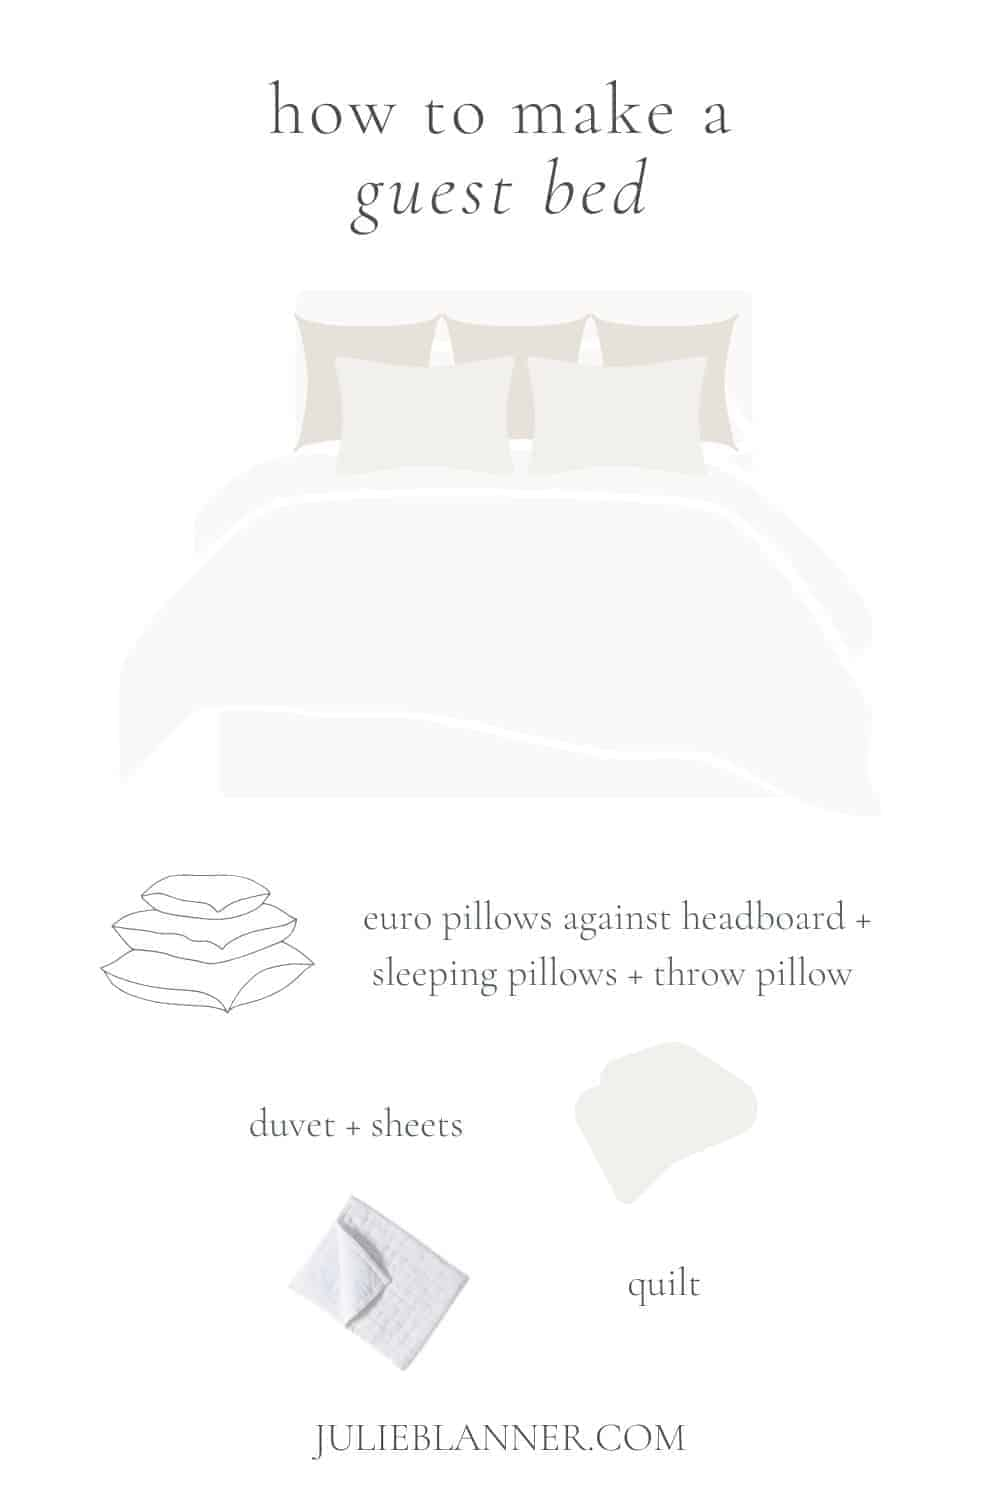 how to make a guest bed graphic